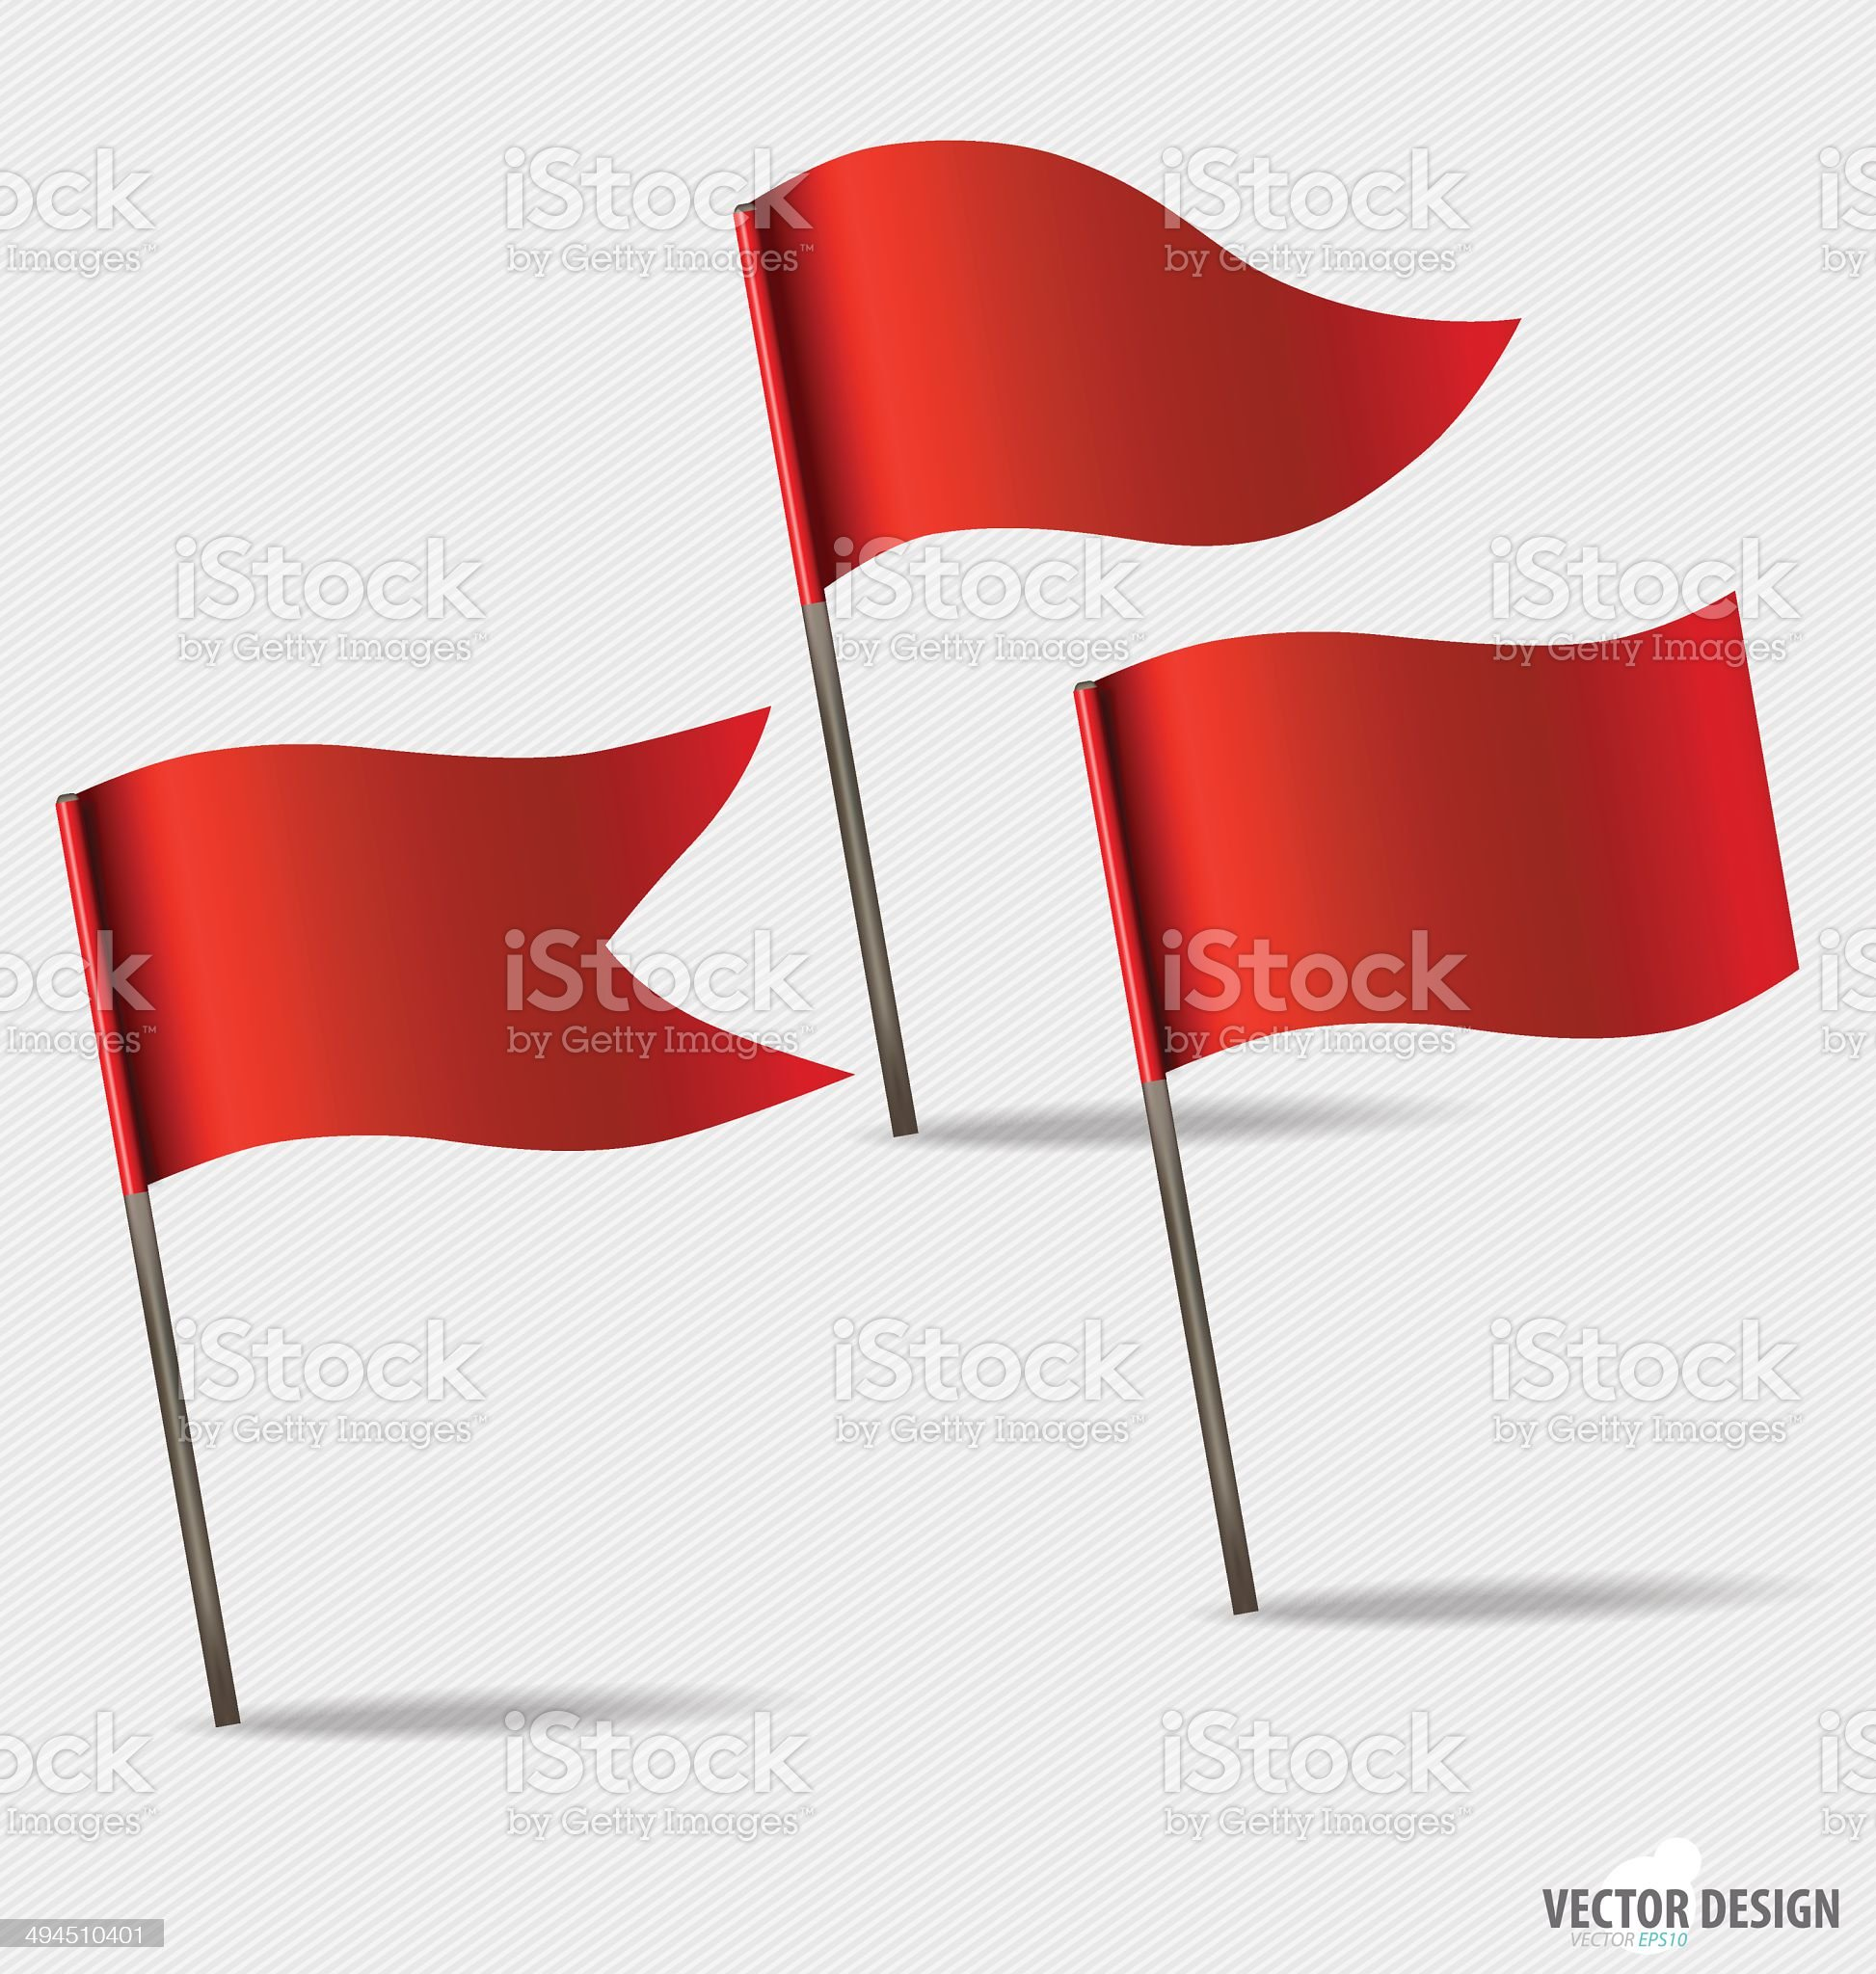 Red Flags. Vector illustration. royalty-free stock vector art